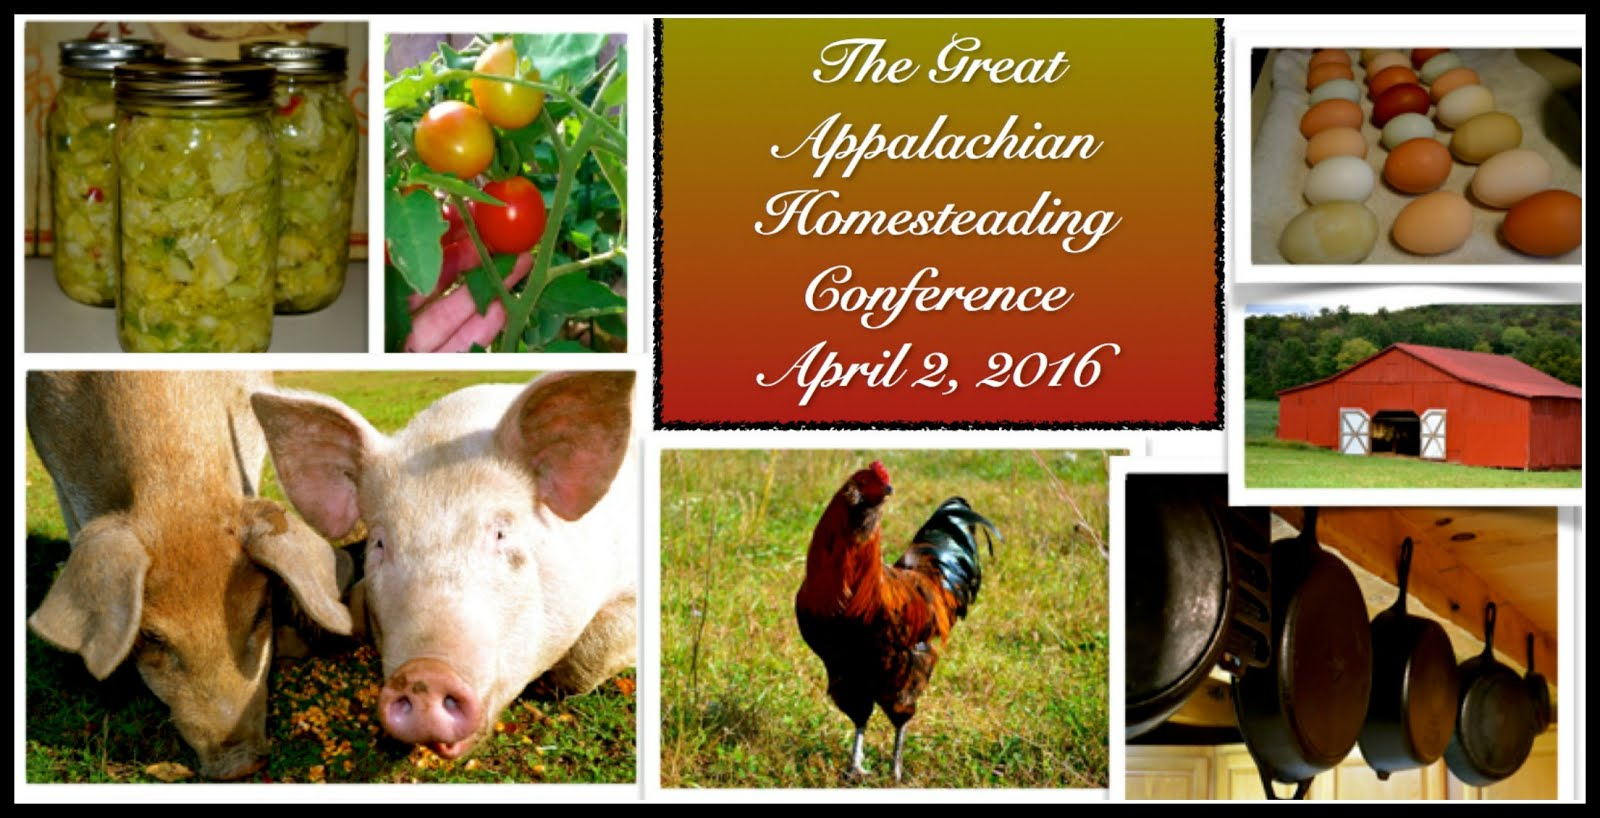 The Great Appalachian Homesteading Conference